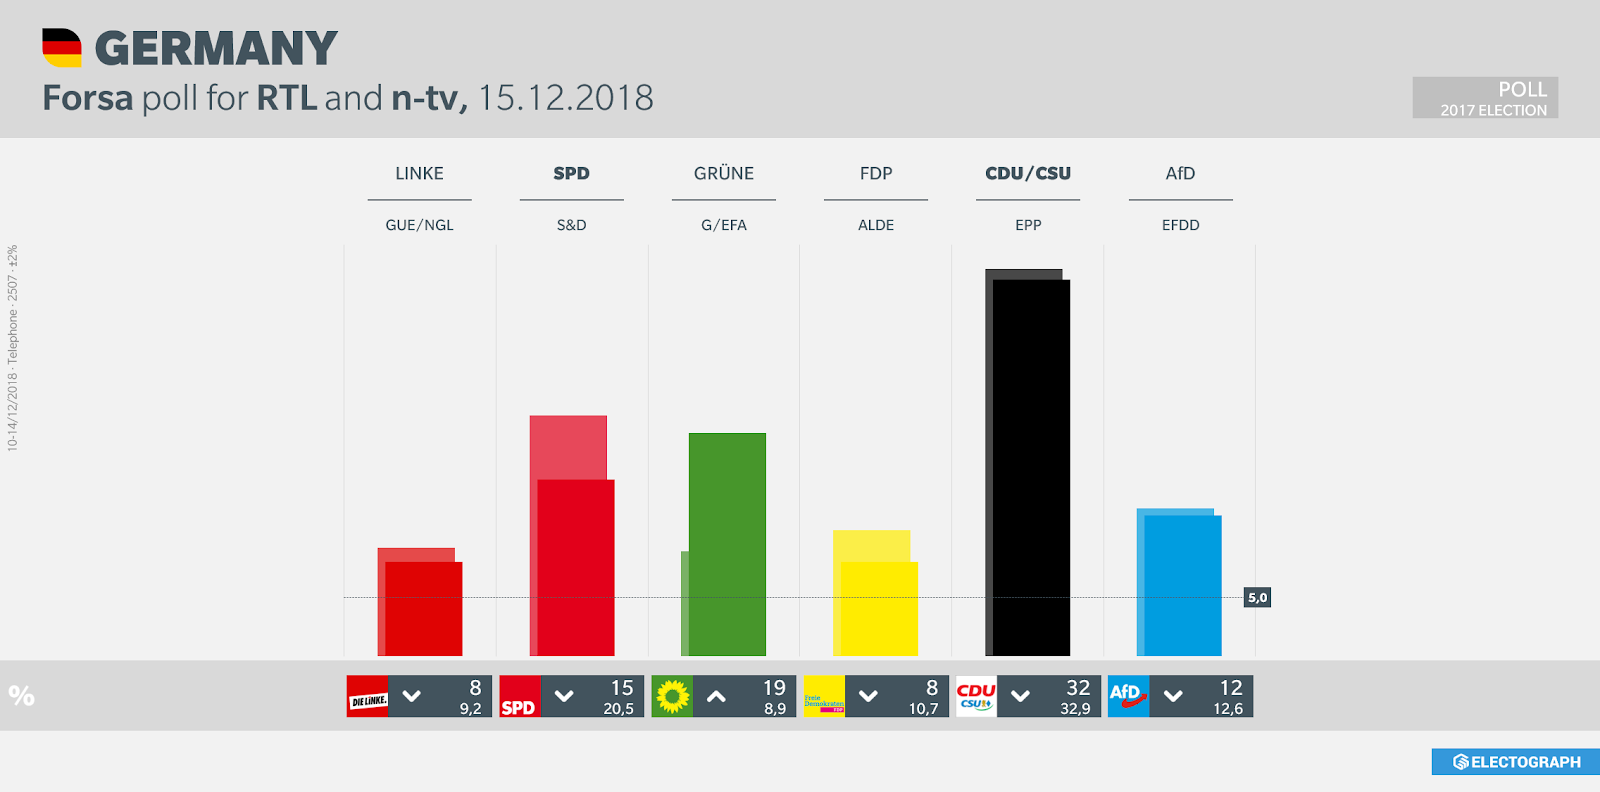 GERMANY: Forsa poll chart for RTL and n-tv, 15 December 2018